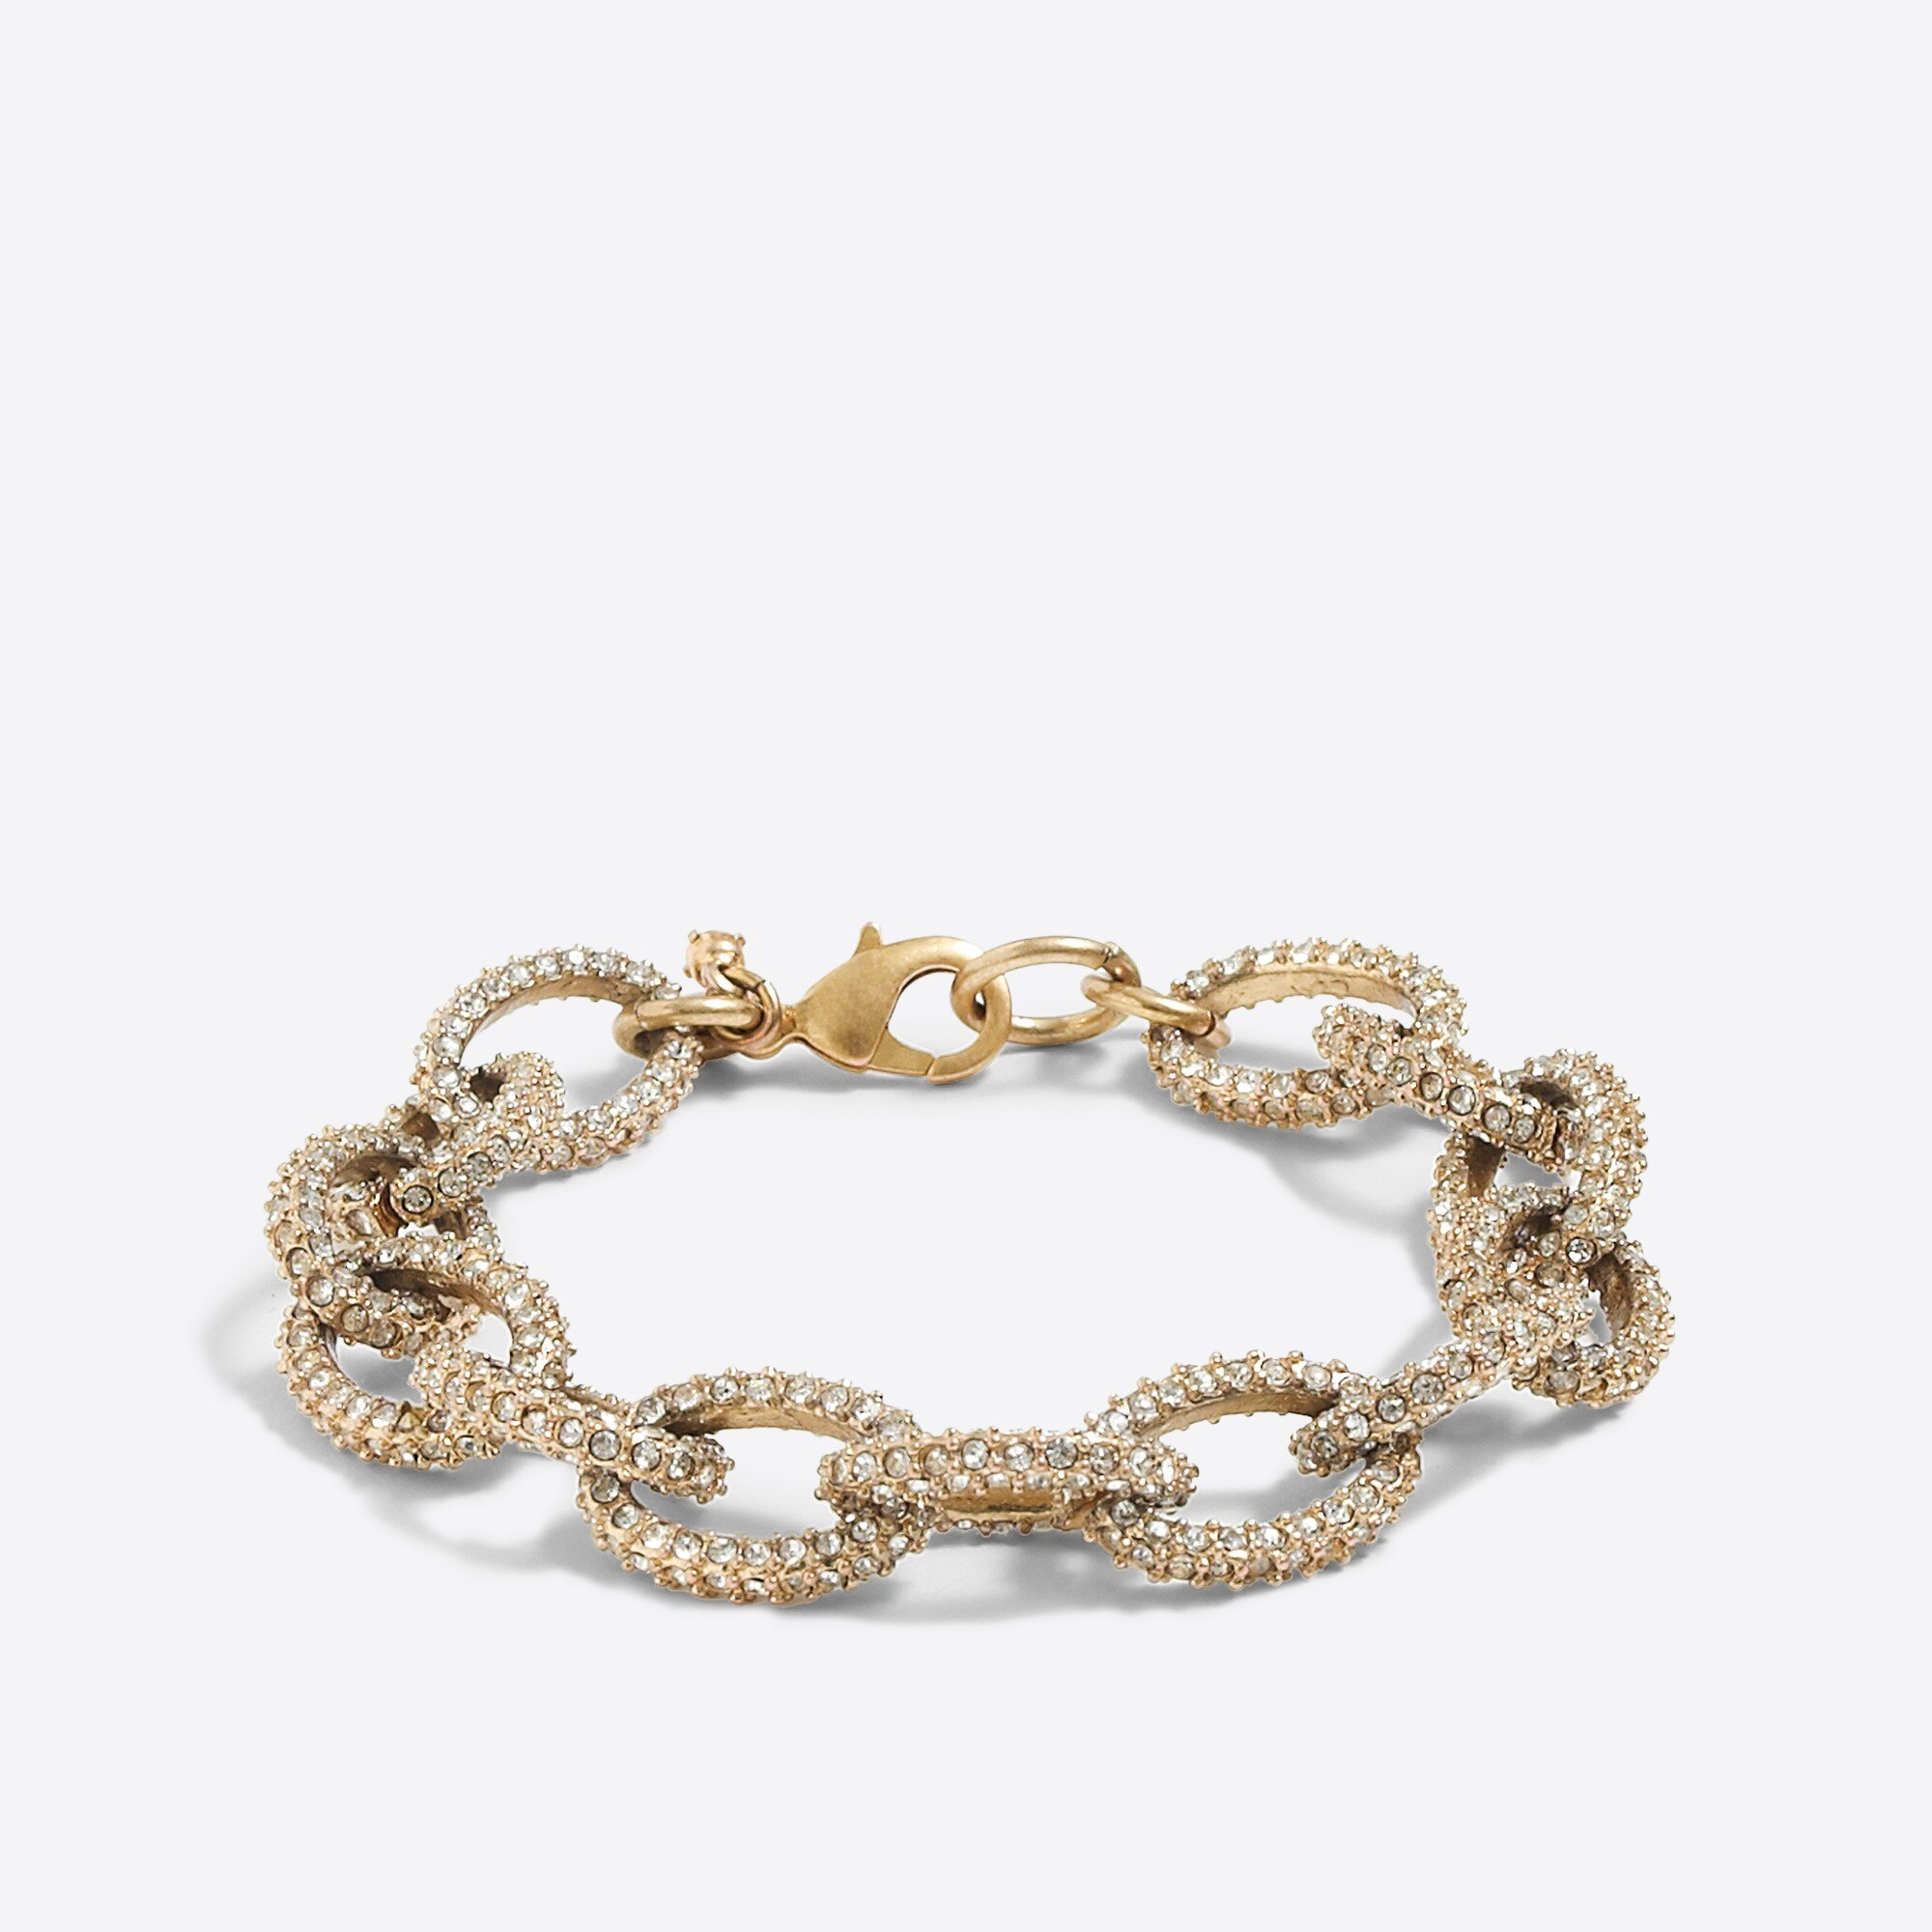 Image 1 for Gold and crystal link bracelet